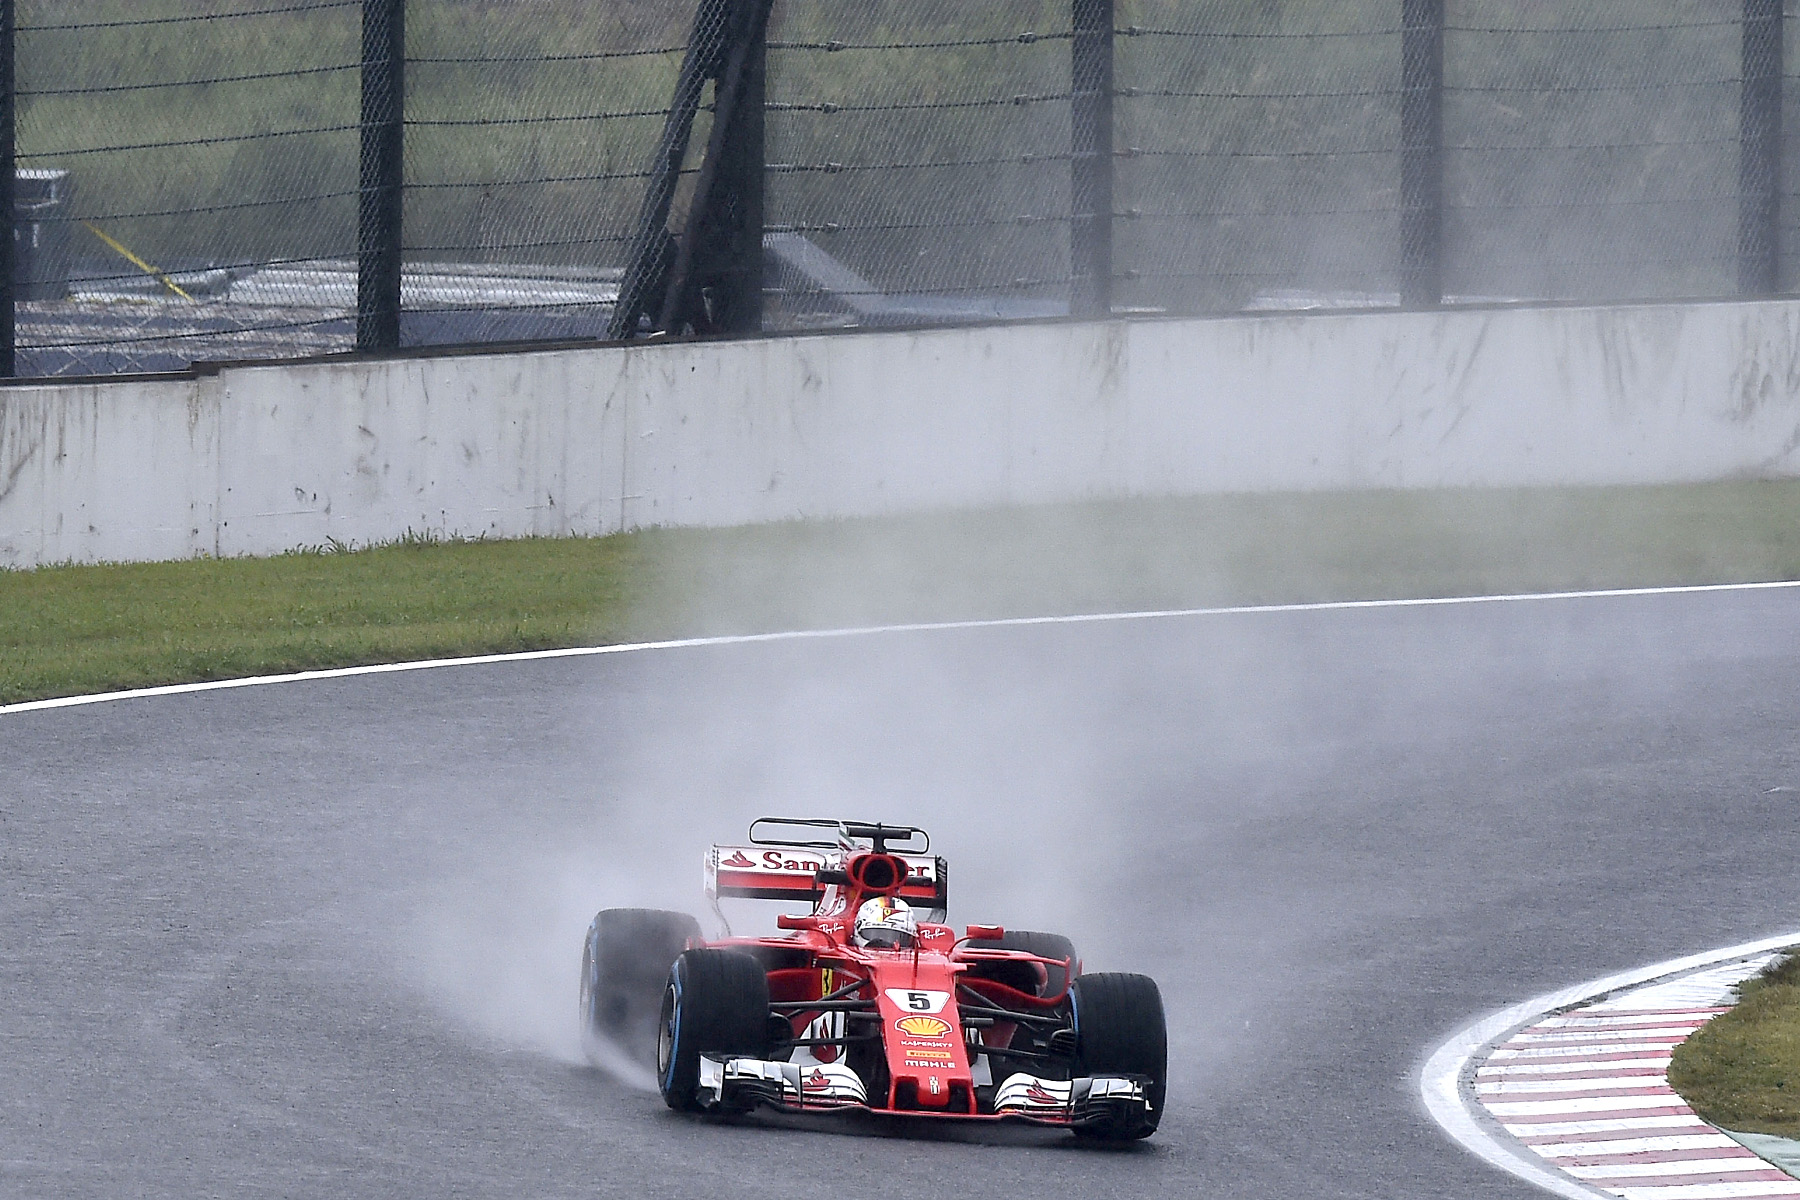 Sebastian Vettel takes to the wet track during FP2 at the 2017 Japanese Grand Prix.